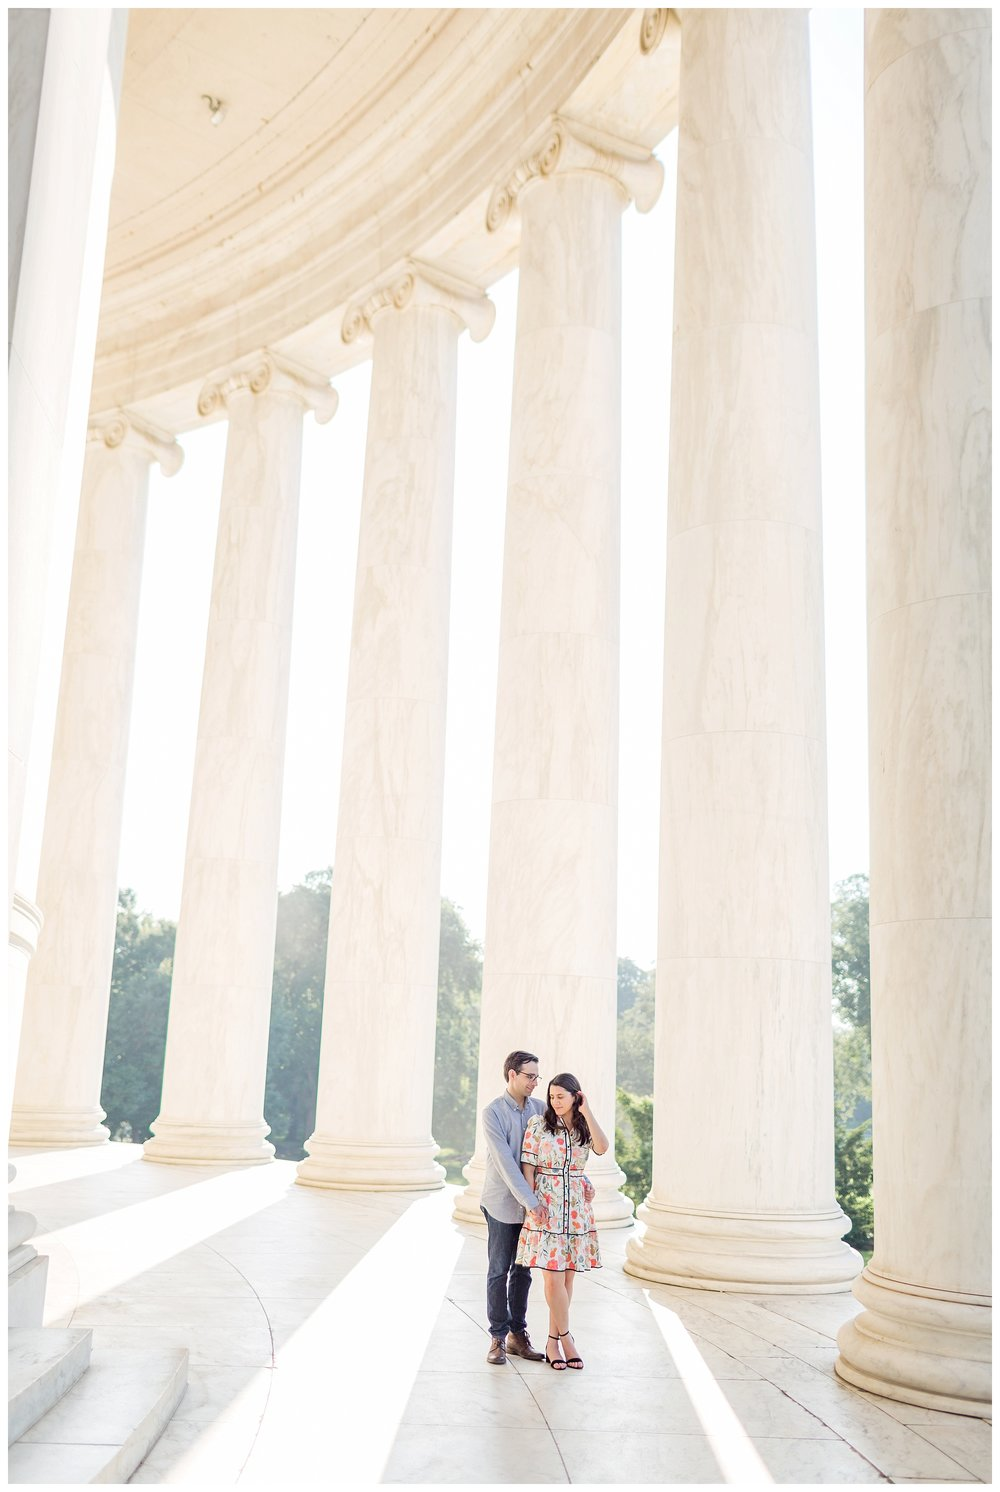 Capitol Hill Engagement Photos DC Wedding Photographer Kir Tuben_0025.jpg